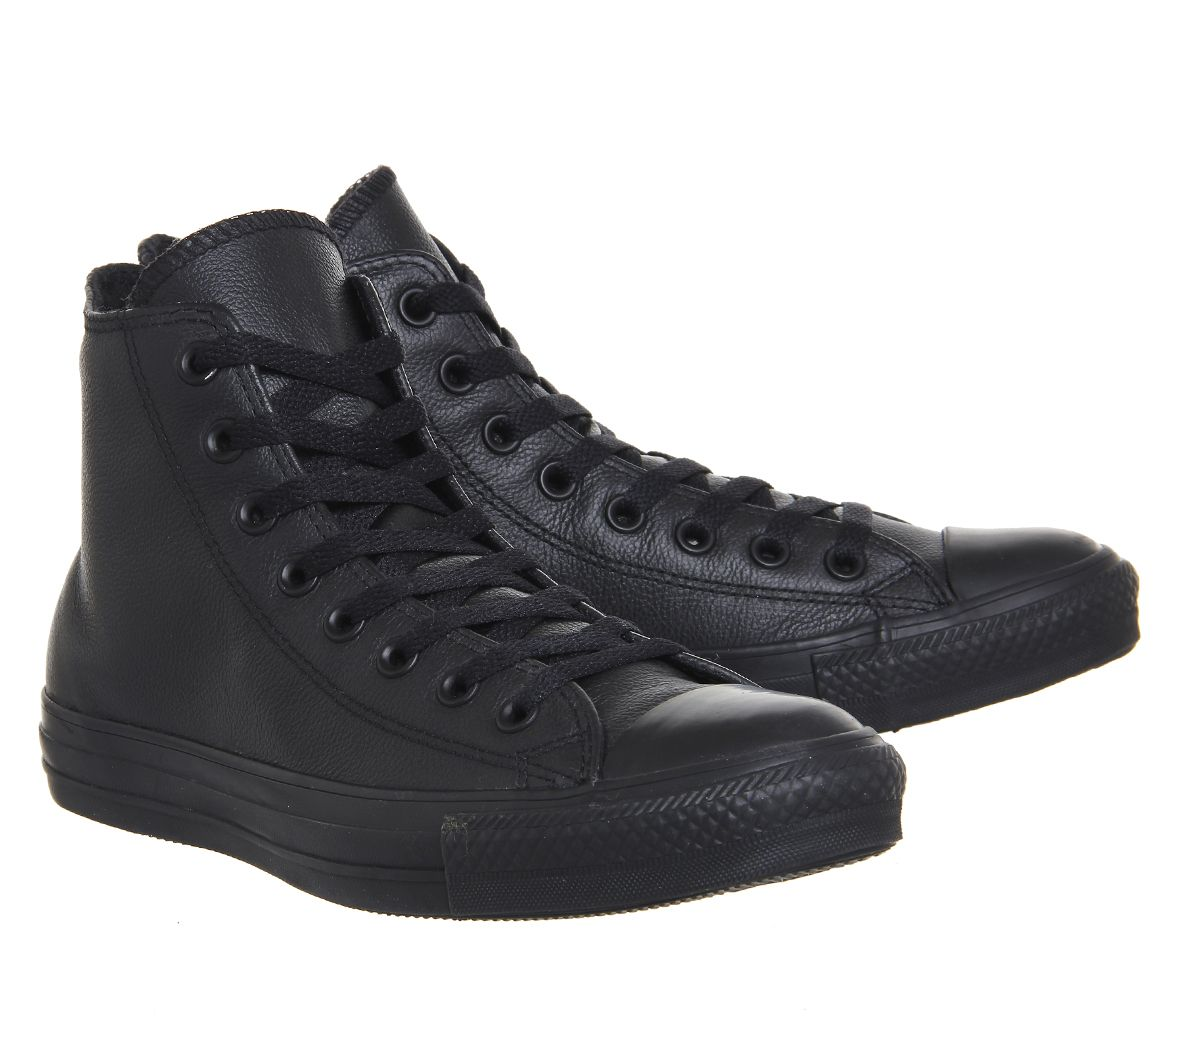 f6b2151749 Womens Converse All Star Hi Leather Flash Black Mono Trainers Shoes ...